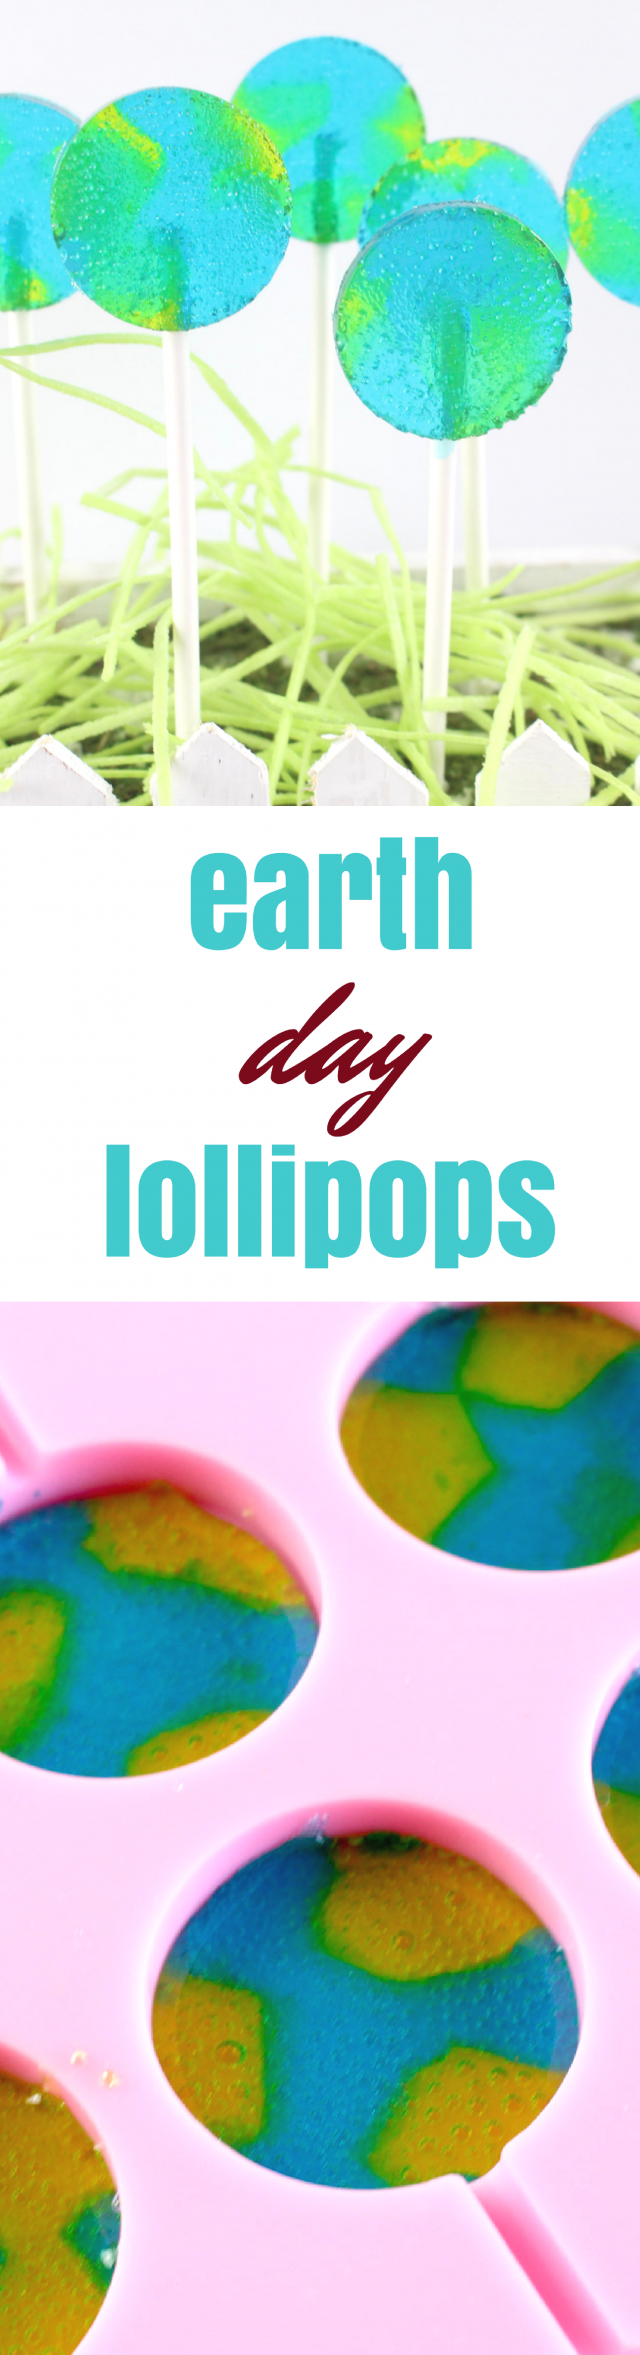 Earth Day is coming up soon, so we wanted to put something fun together for this special day. We think your kids will love it, too. Earth Day lollipops! Check out the recipe below.